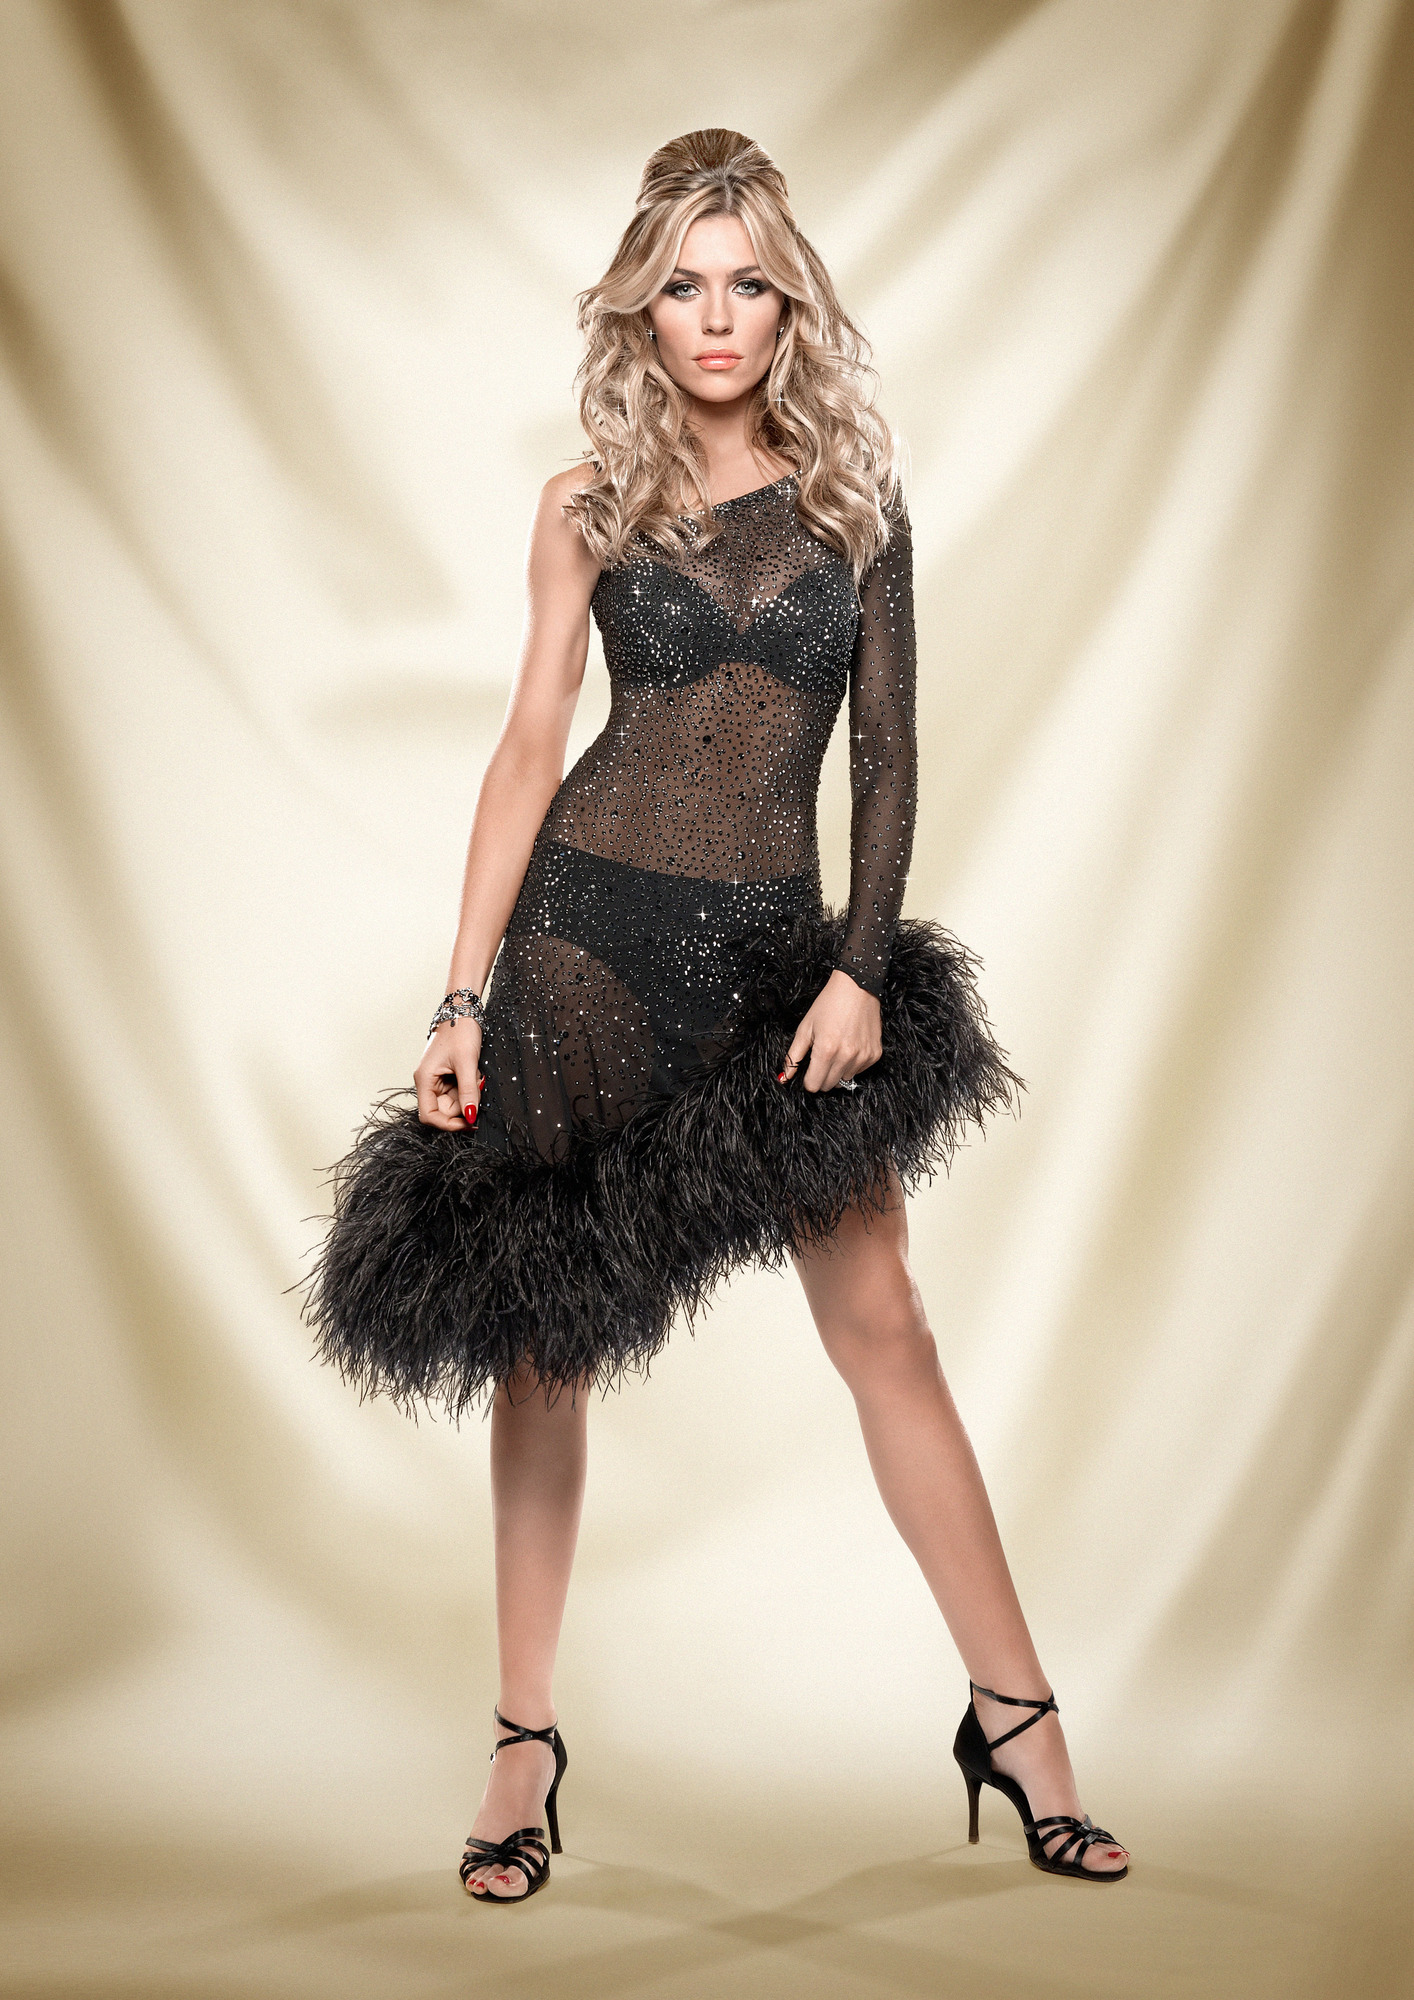 Stamina Come Dancing: Abbey Clancy hopes appearing on Strictly will boost her energy levels (Picture: BBC)